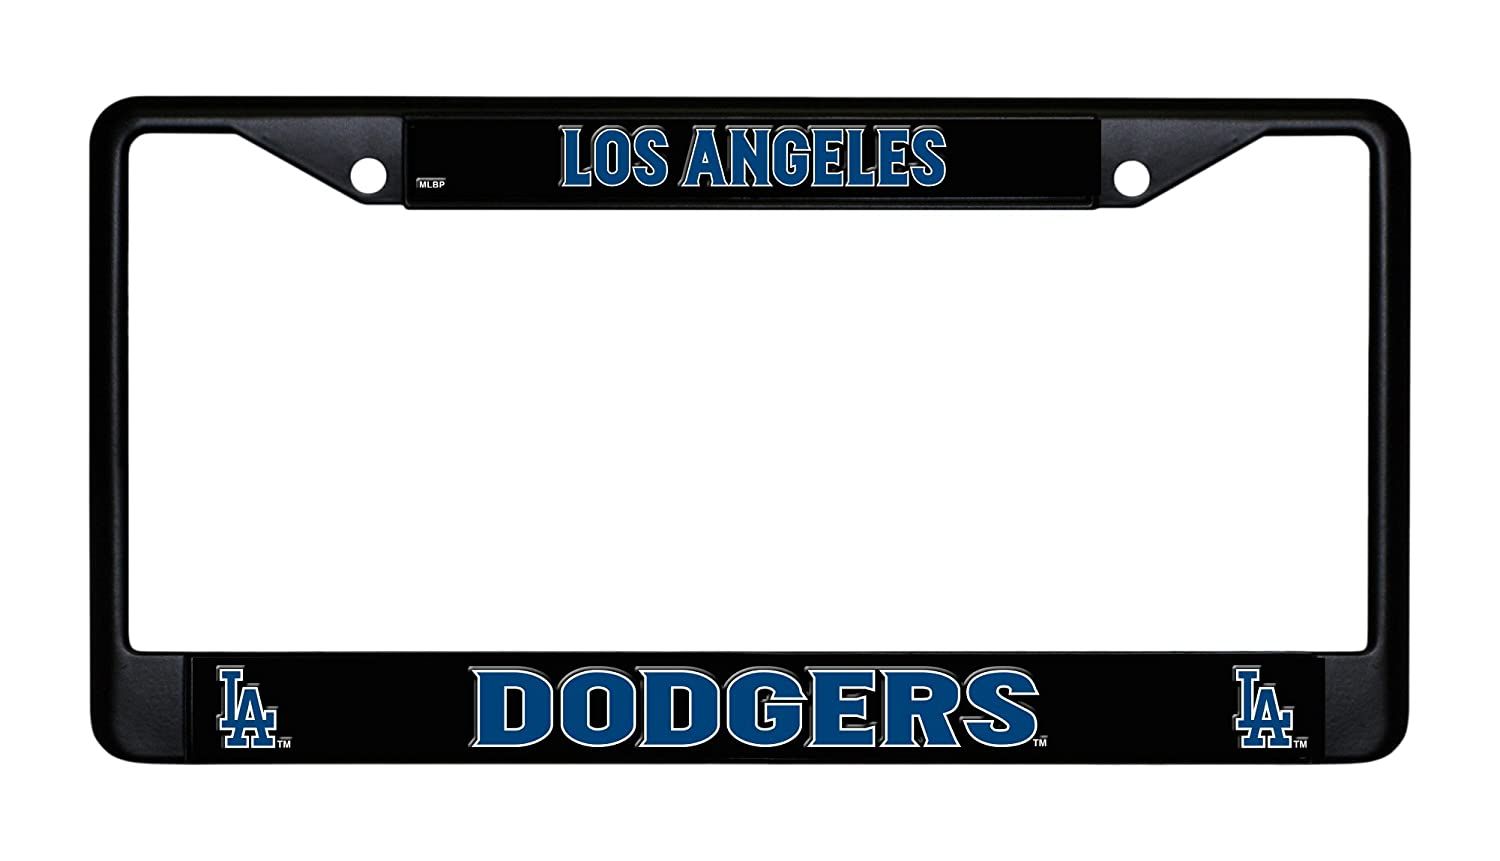 Los Angeles Dodgers Chrome License Plate Frame Rico Industries Inc FC5601